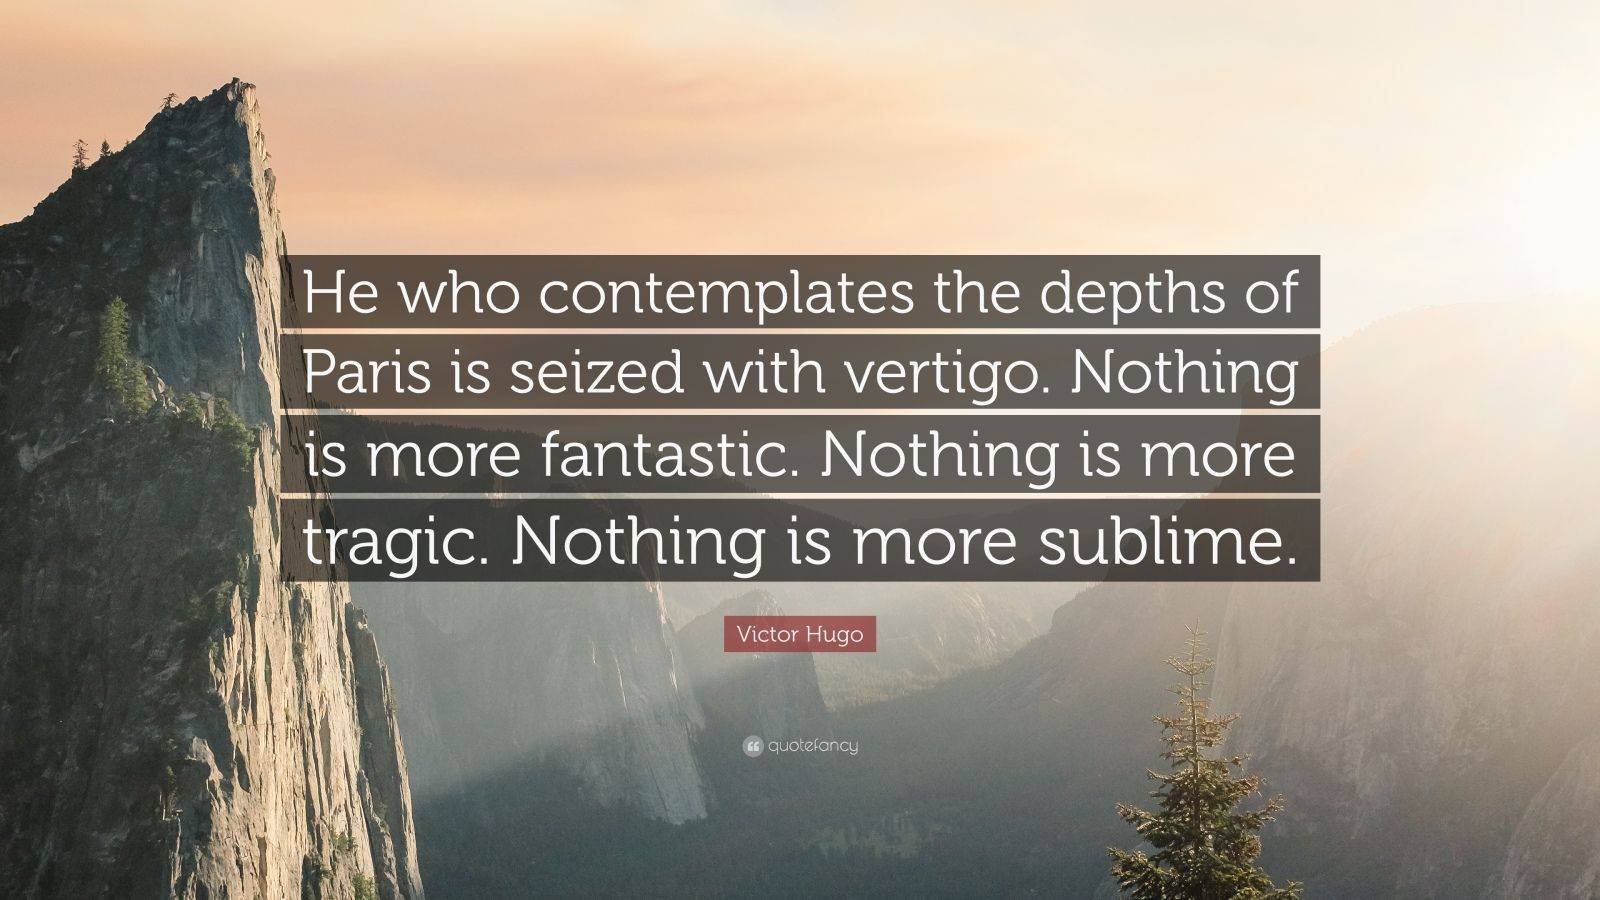 """Victor Hugo Quote: """"He who contemplates the depths of Paris is seized with vertigo. Nothing is more fantastic. Nothing is more tragic. Nothing is more sublime."""""""